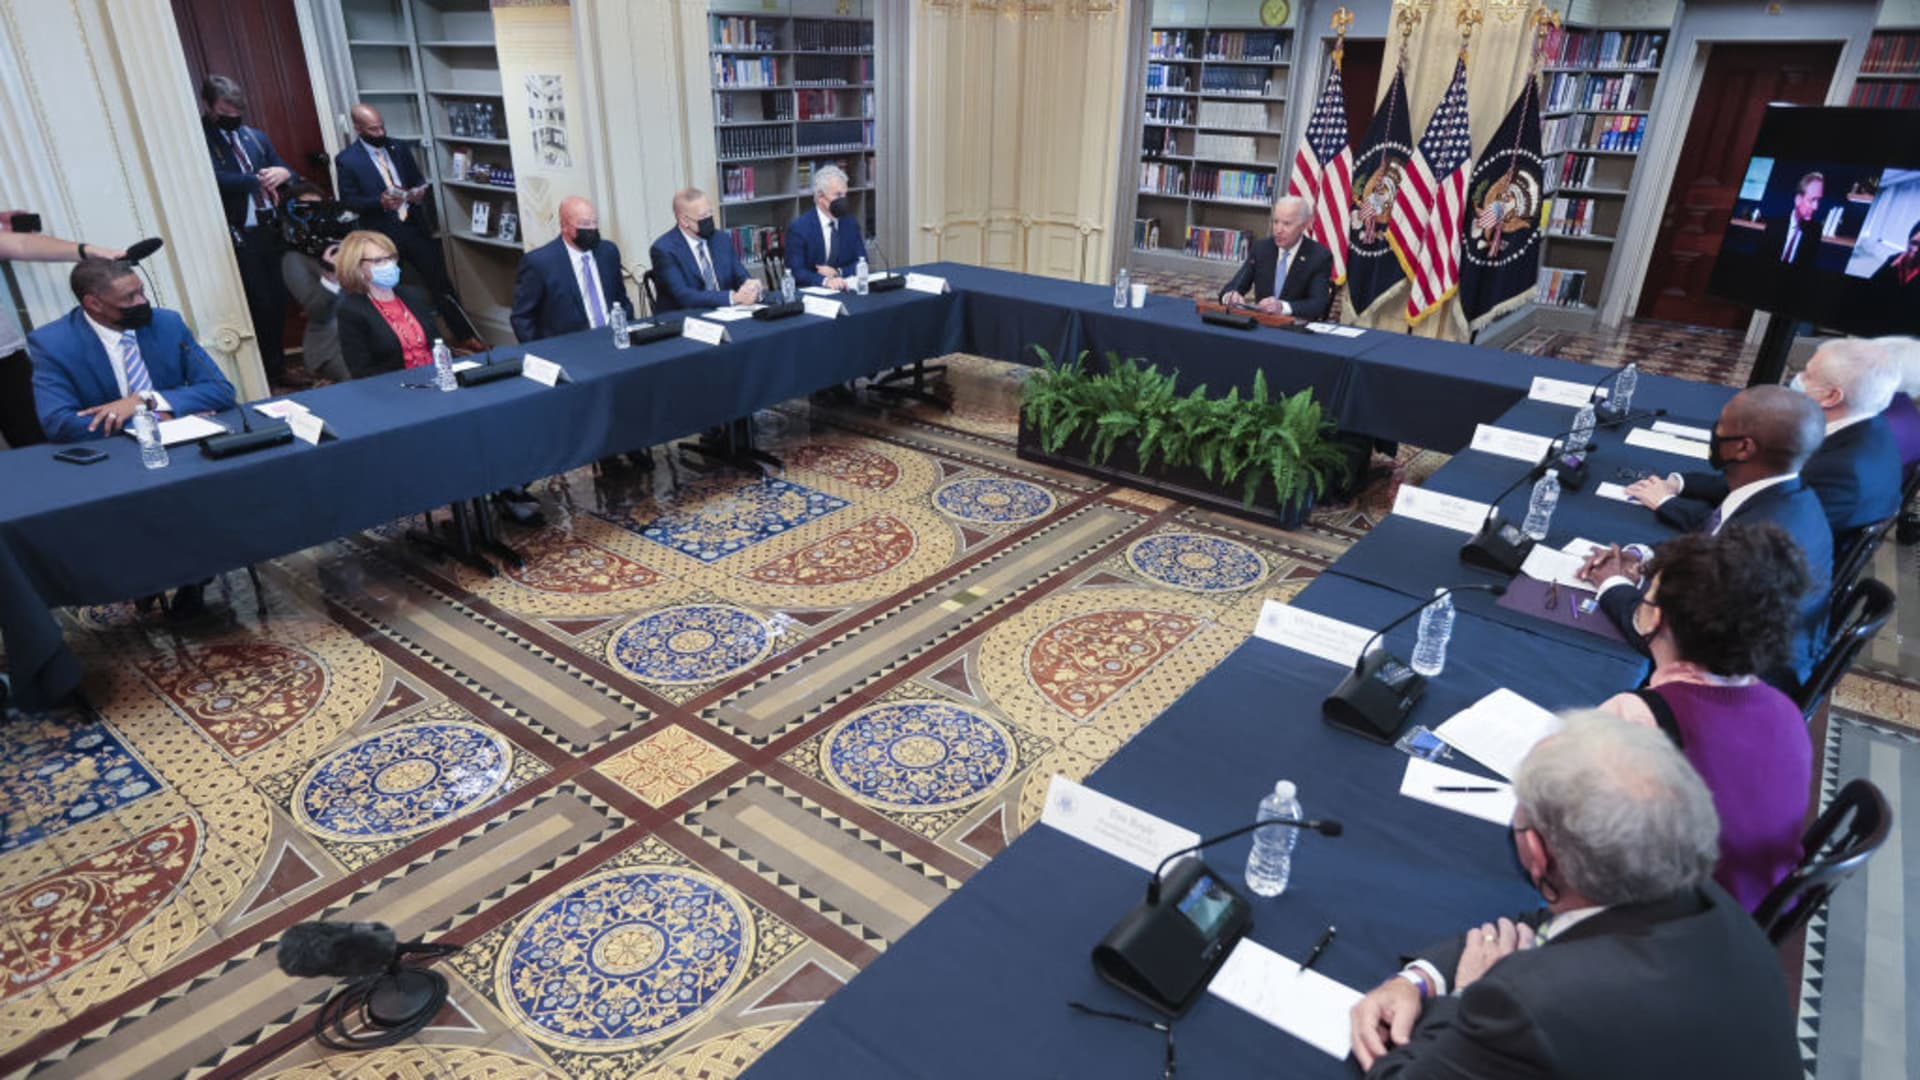 U.S. President Joe Biden, center, speaks during a meeting in the Eisenhower Executive Office Building Library in Washington, D.C., U.S., on Wednesday, Sept. 15, 2021.